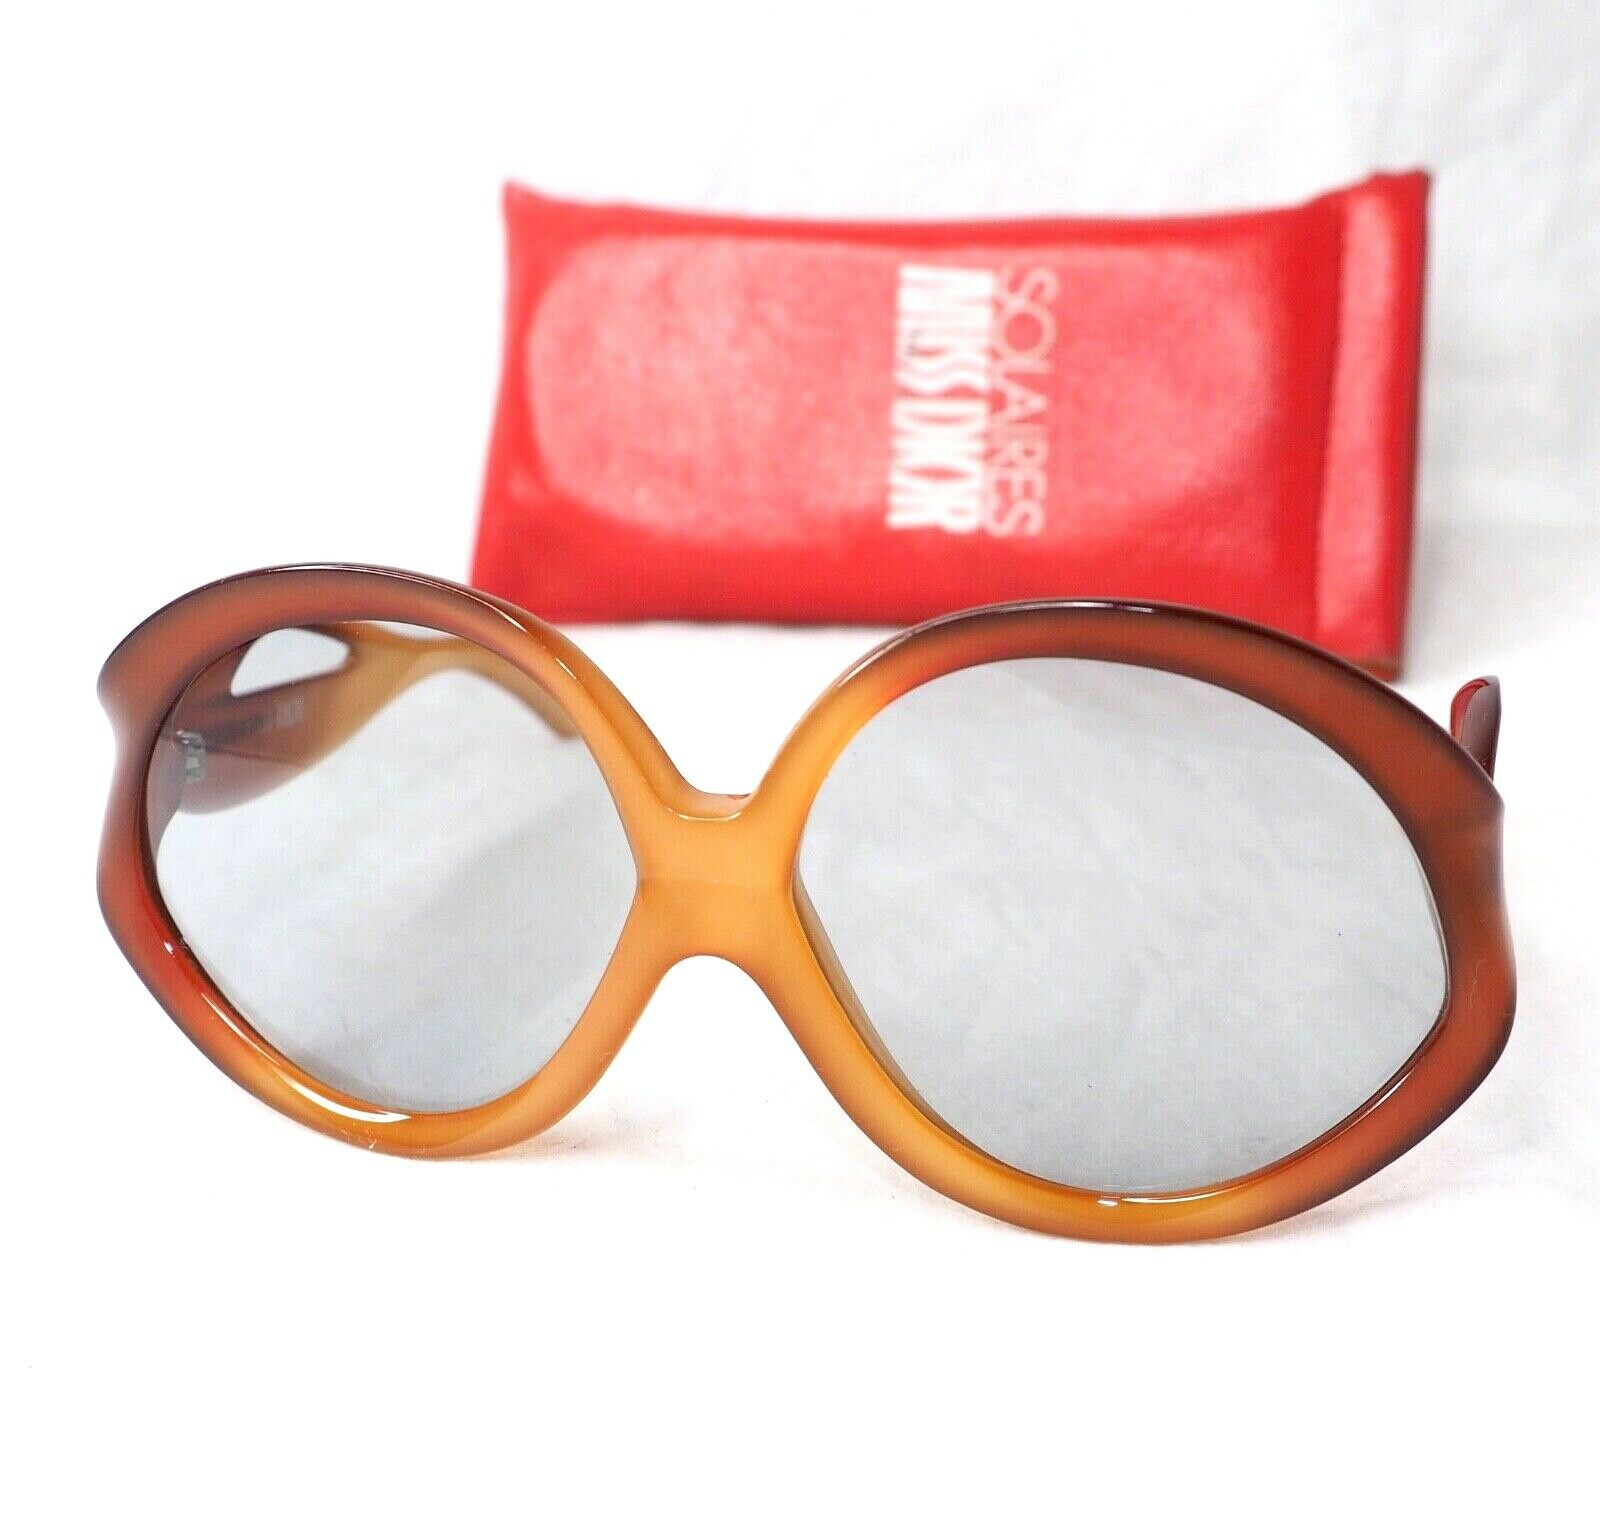 Christian Dior MISS DIOR 125 vintage amber brown oversized butterfly sunglasses